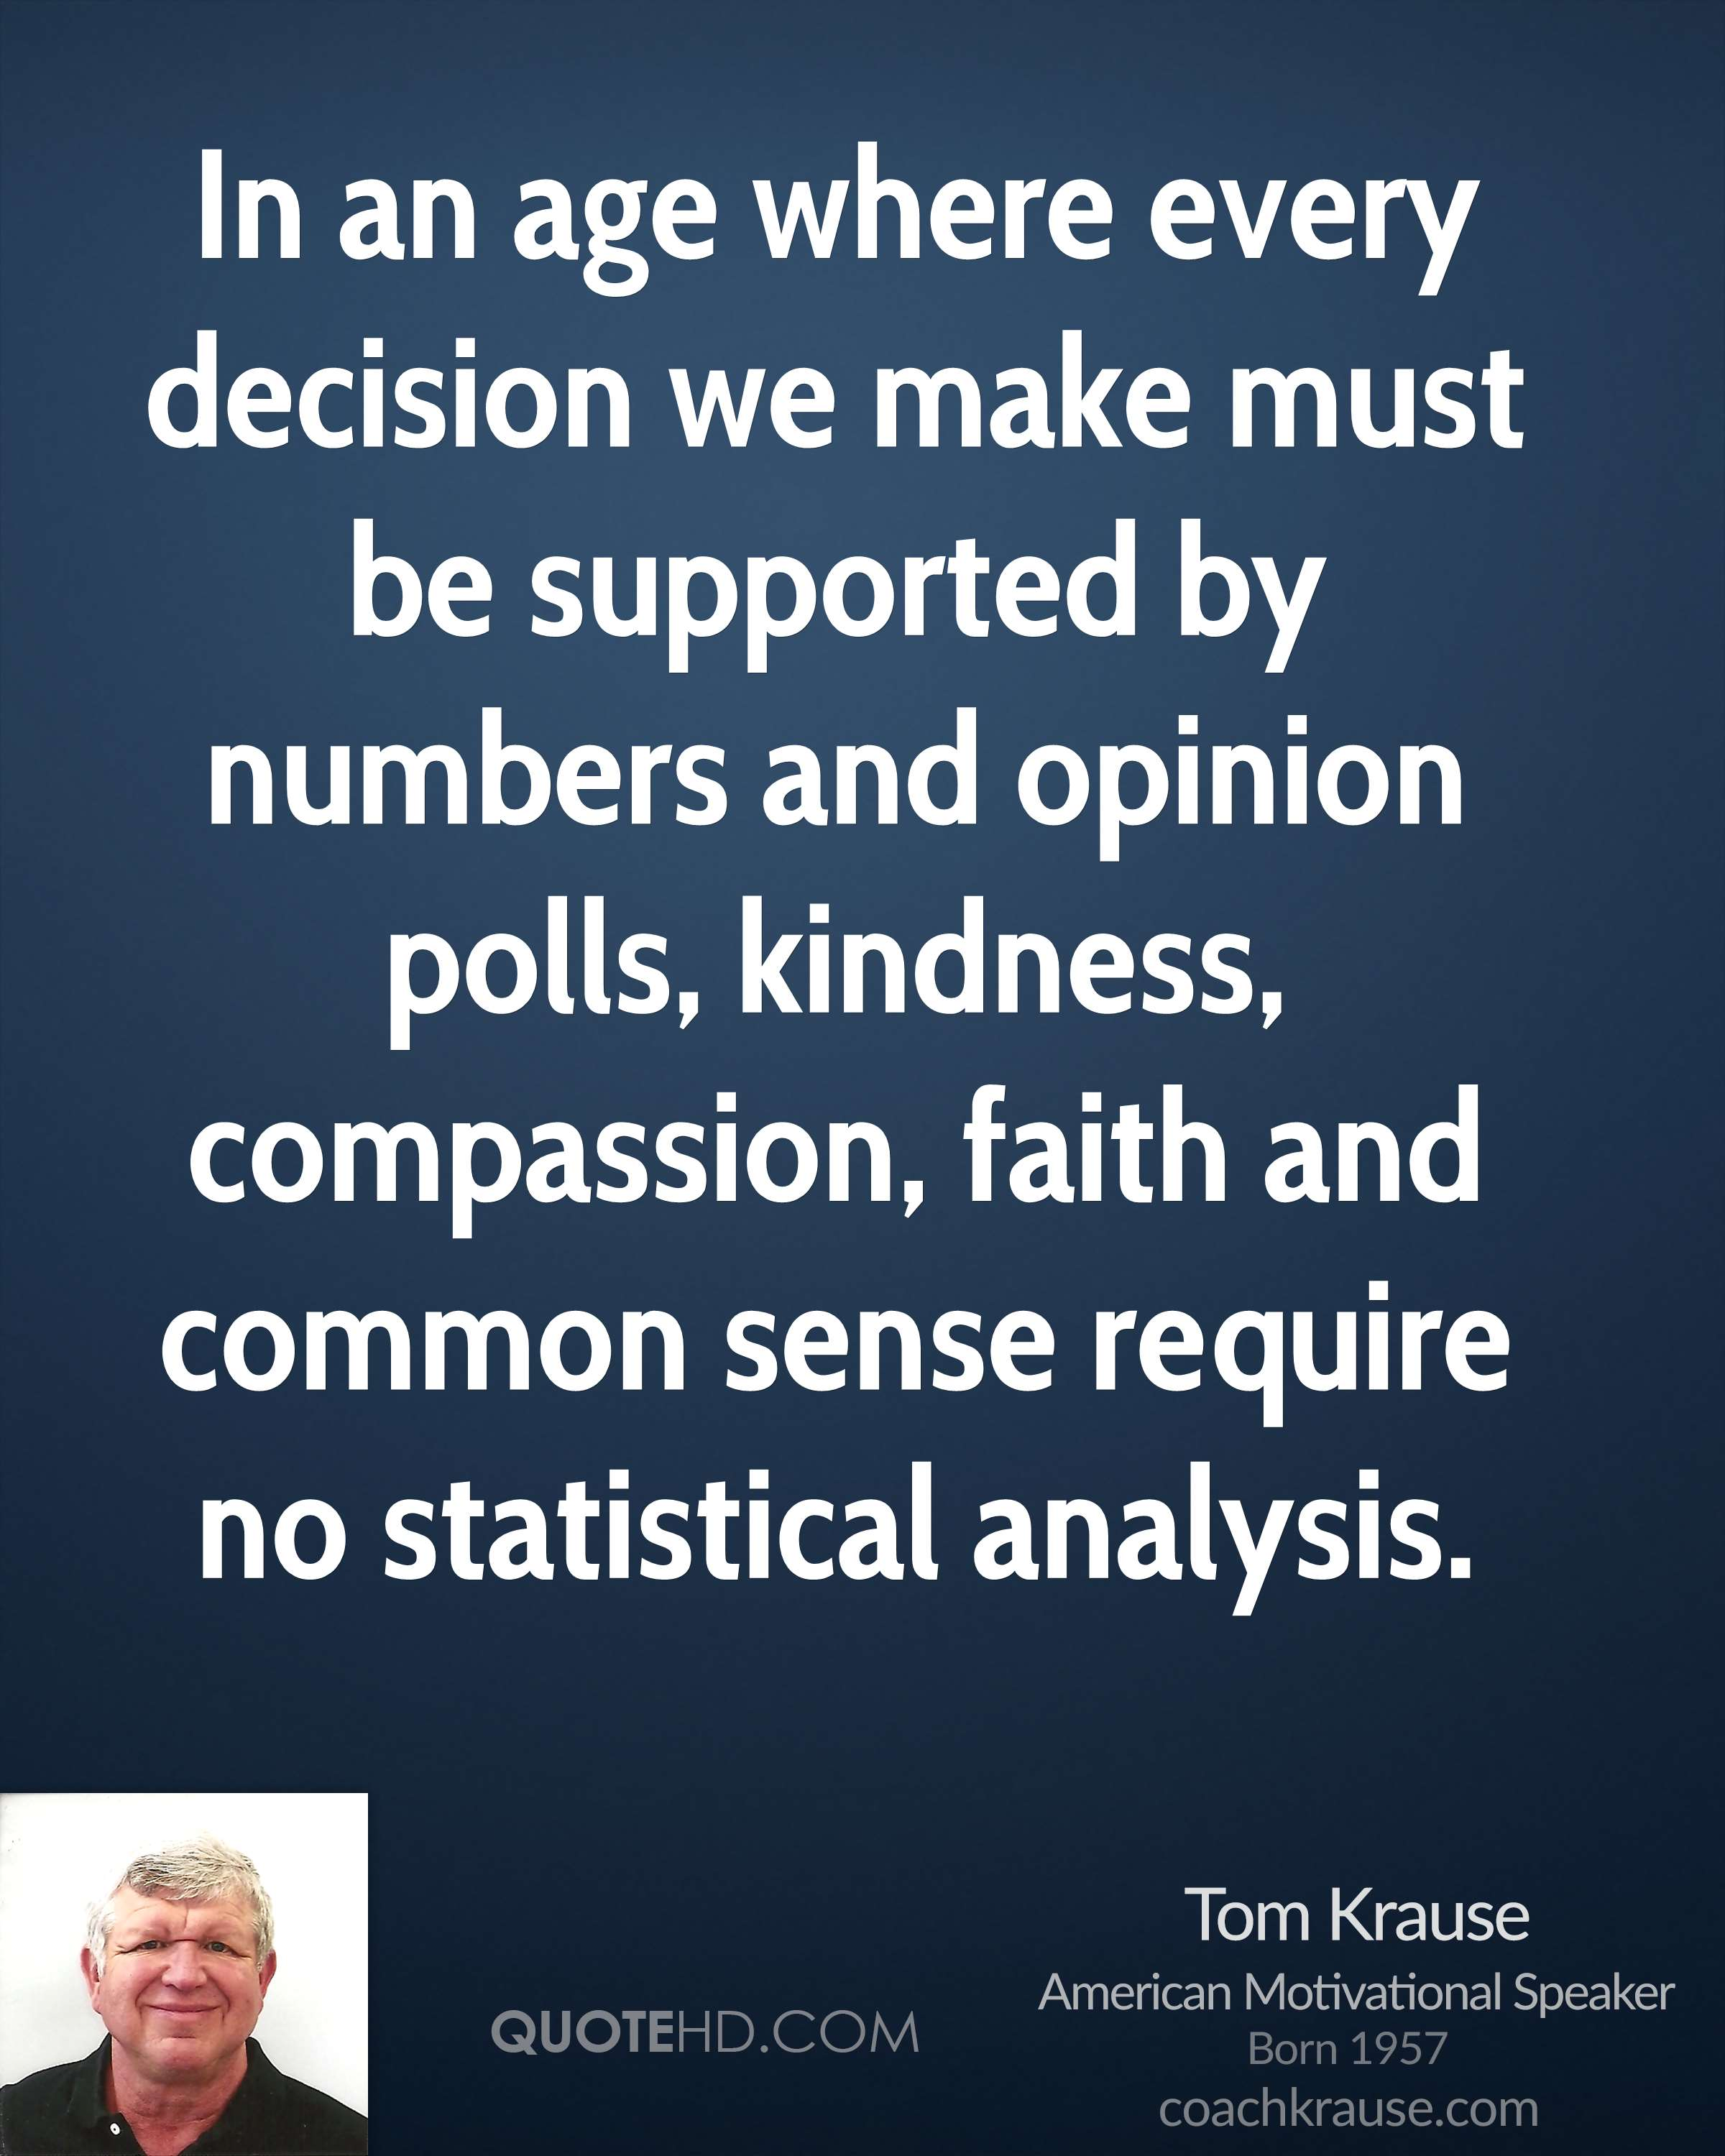 In an age where every decision we make must be supported by numbers and opinion polls, kindness, compassion, faith and common sense require no statistical analysis.